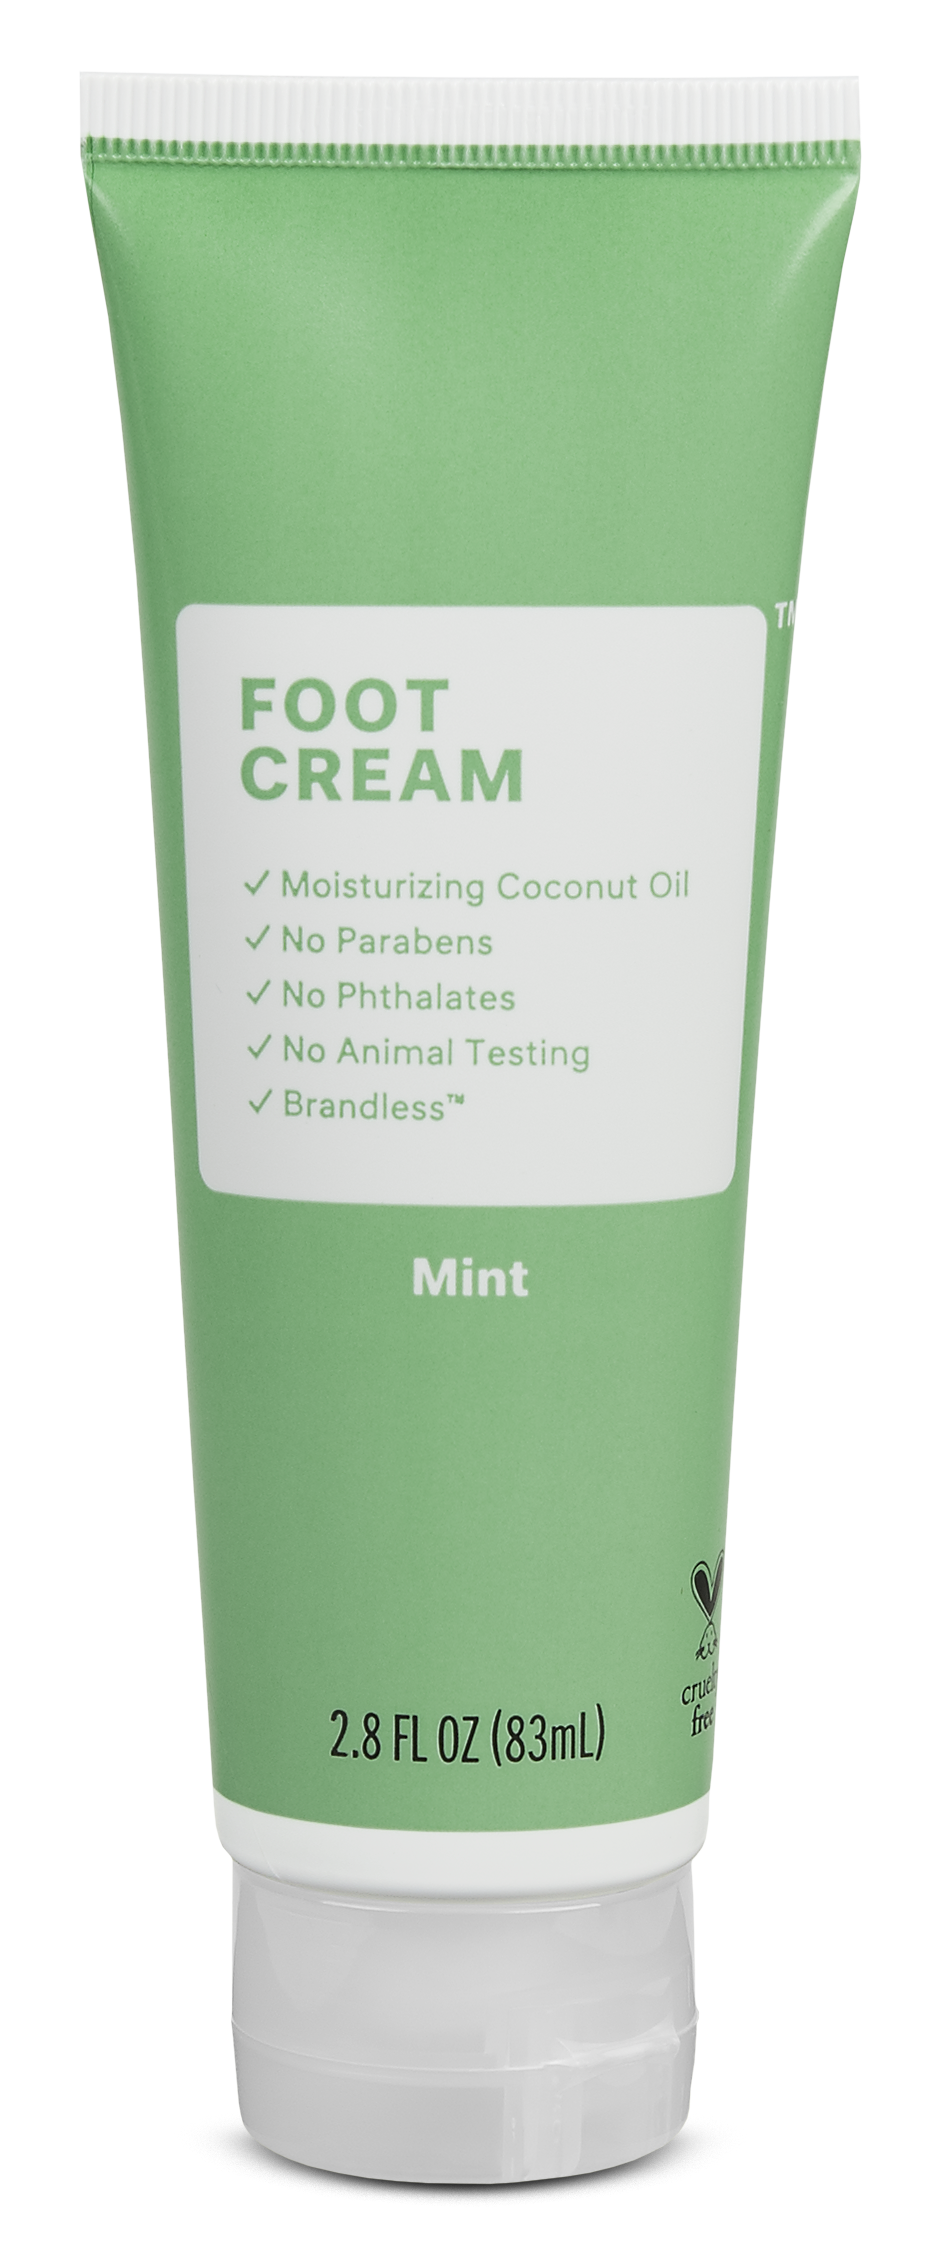 Brandless: Foot Cream